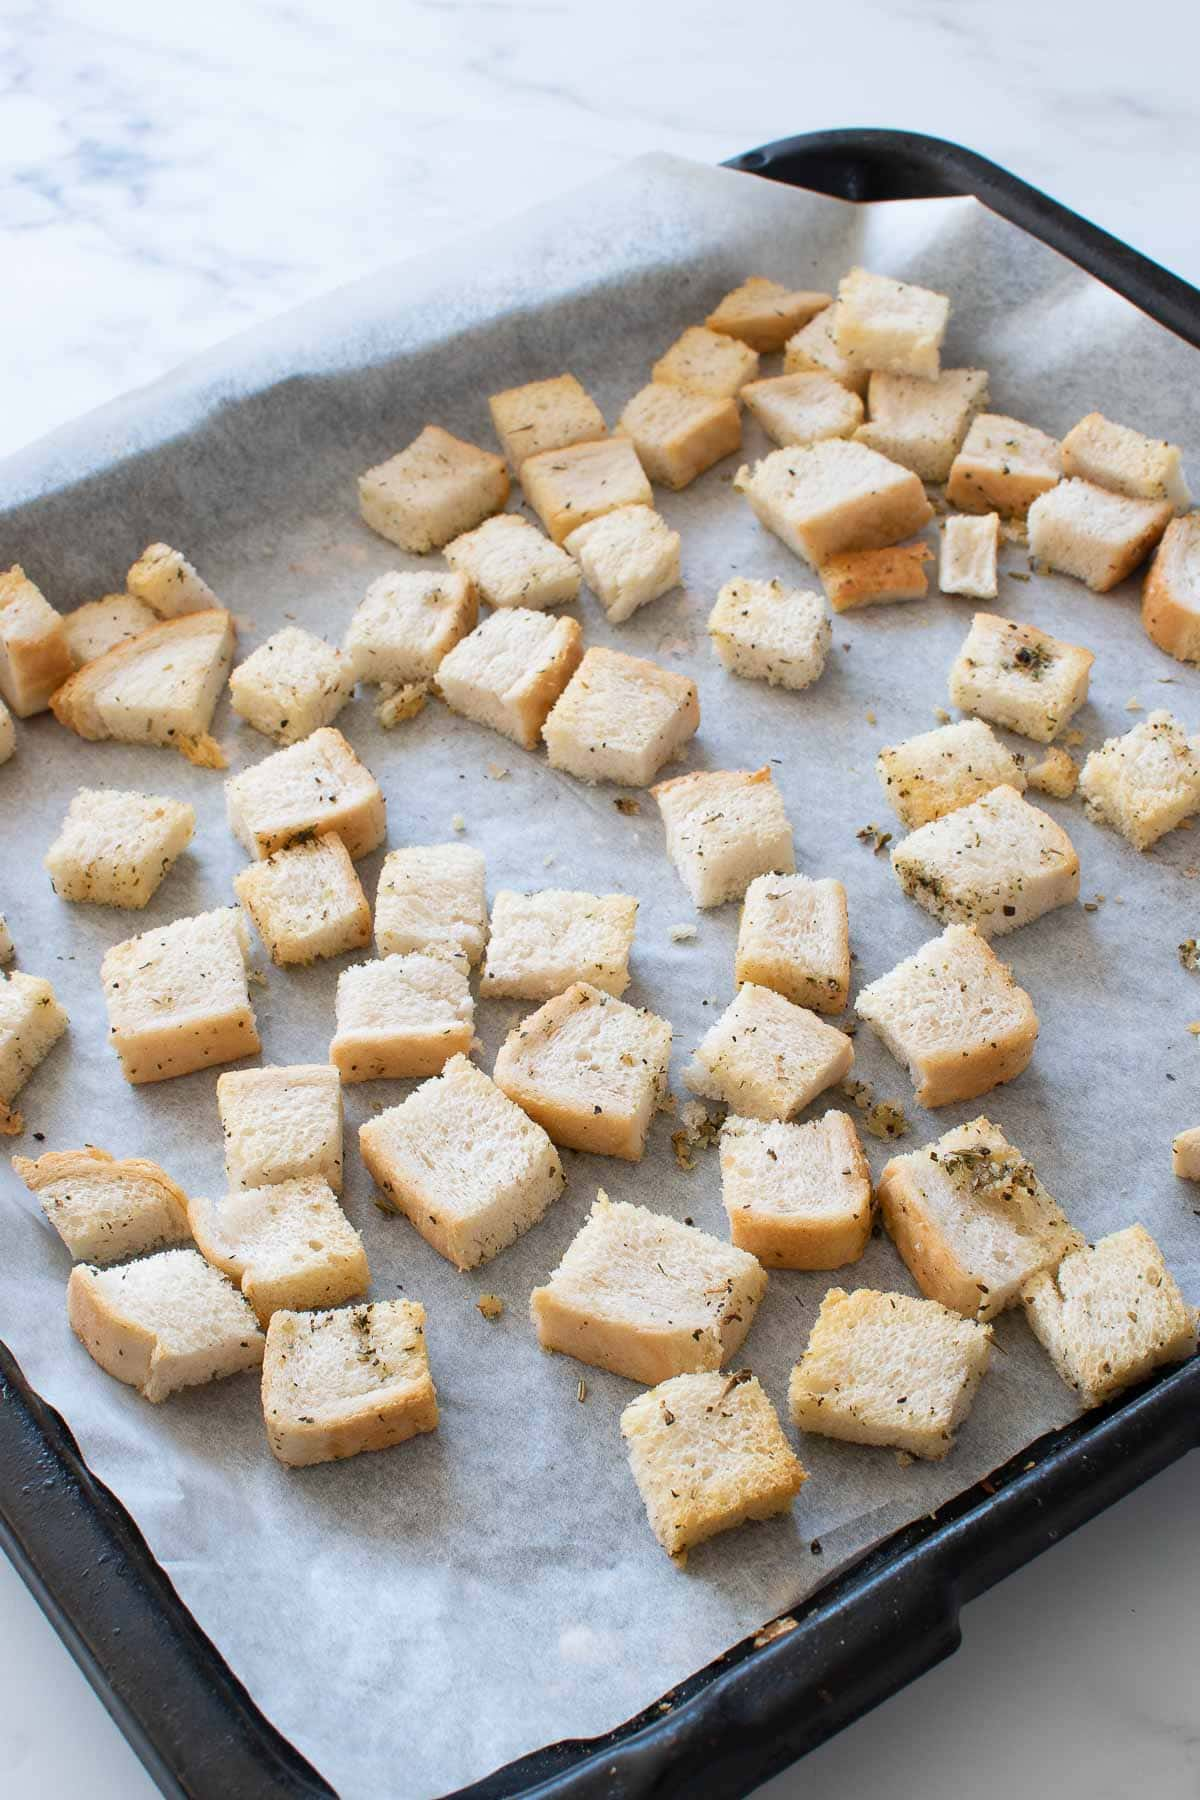 A baking sheet with homemade croutons.